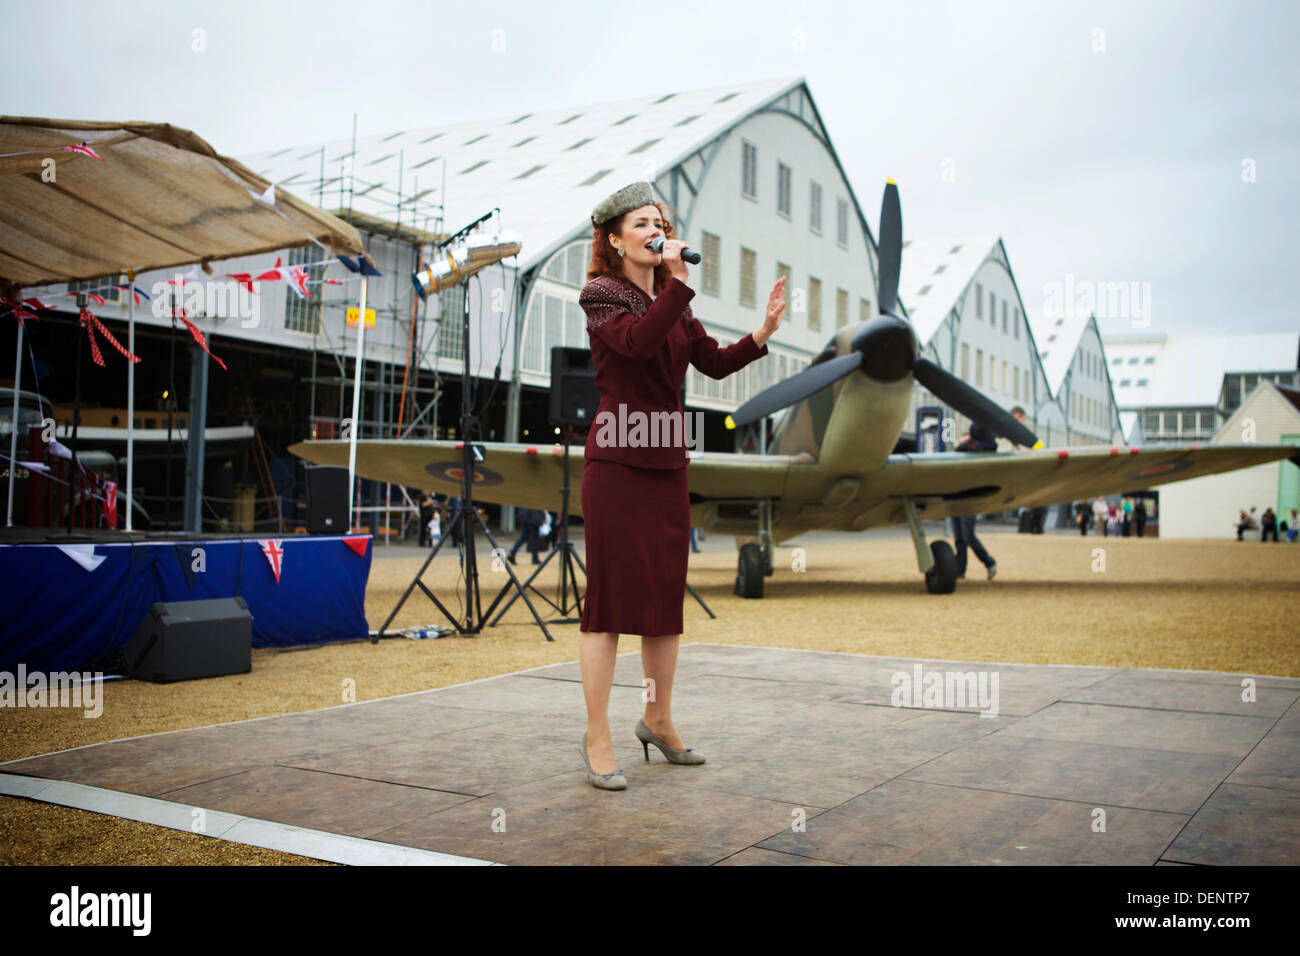 Chatham, UK. 21st Sep, 2013. Salute to the 40's - Britain's 1940's Home Front Event at The Historic Dockyard Chatham. Spitfire / female singer - Stock Image